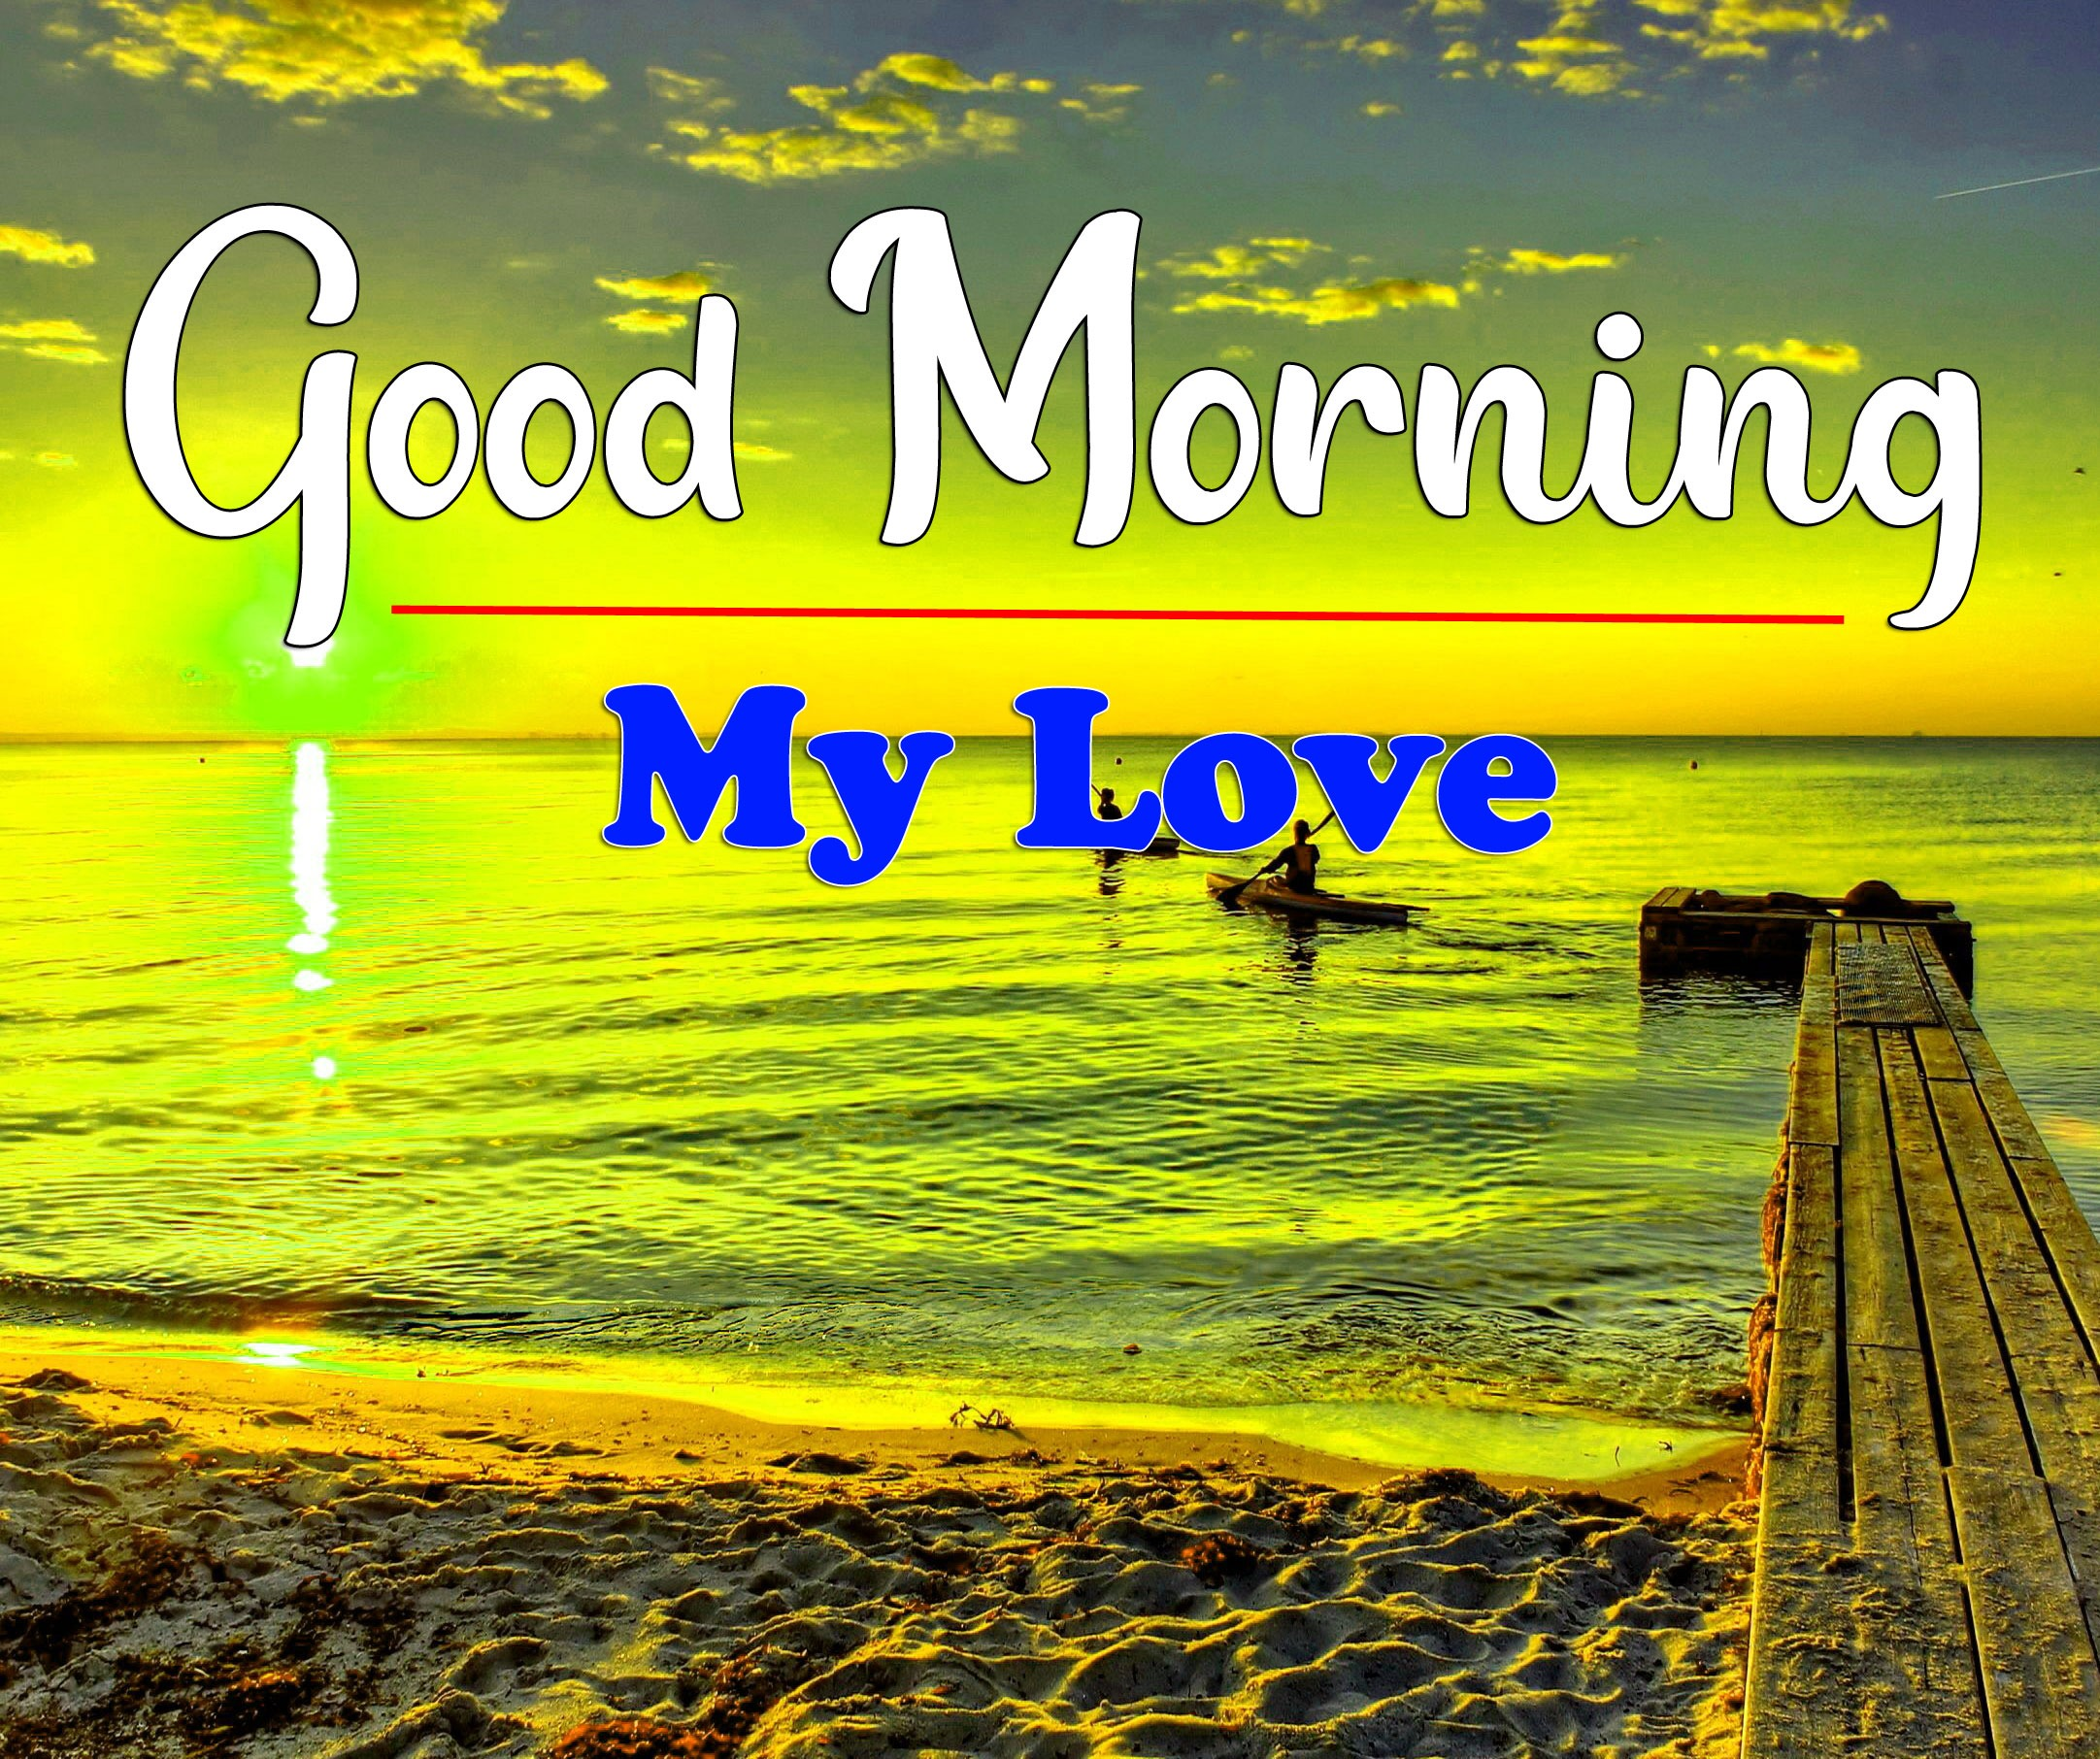 HD Latest Good Morning Photo Free Download